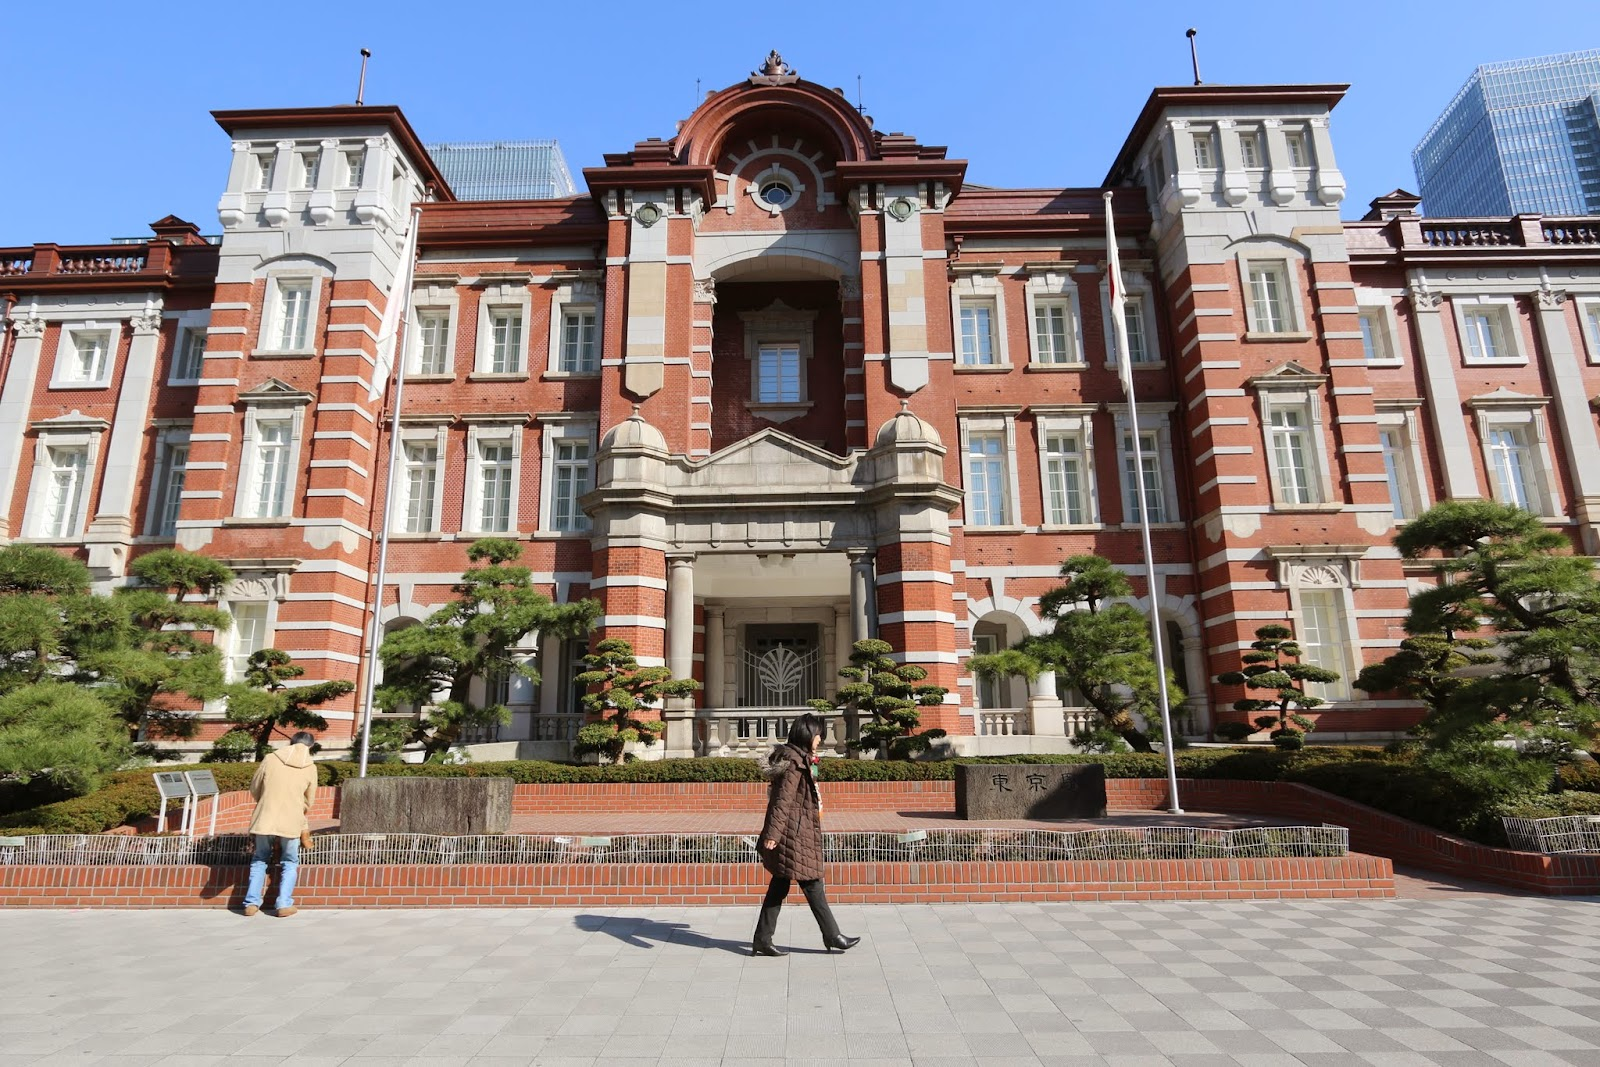 The architecture of Tokyo Station symbolizes the country's modernization and is surrounded by sky scrapers in within Marunouchi in Tokyo, Japan